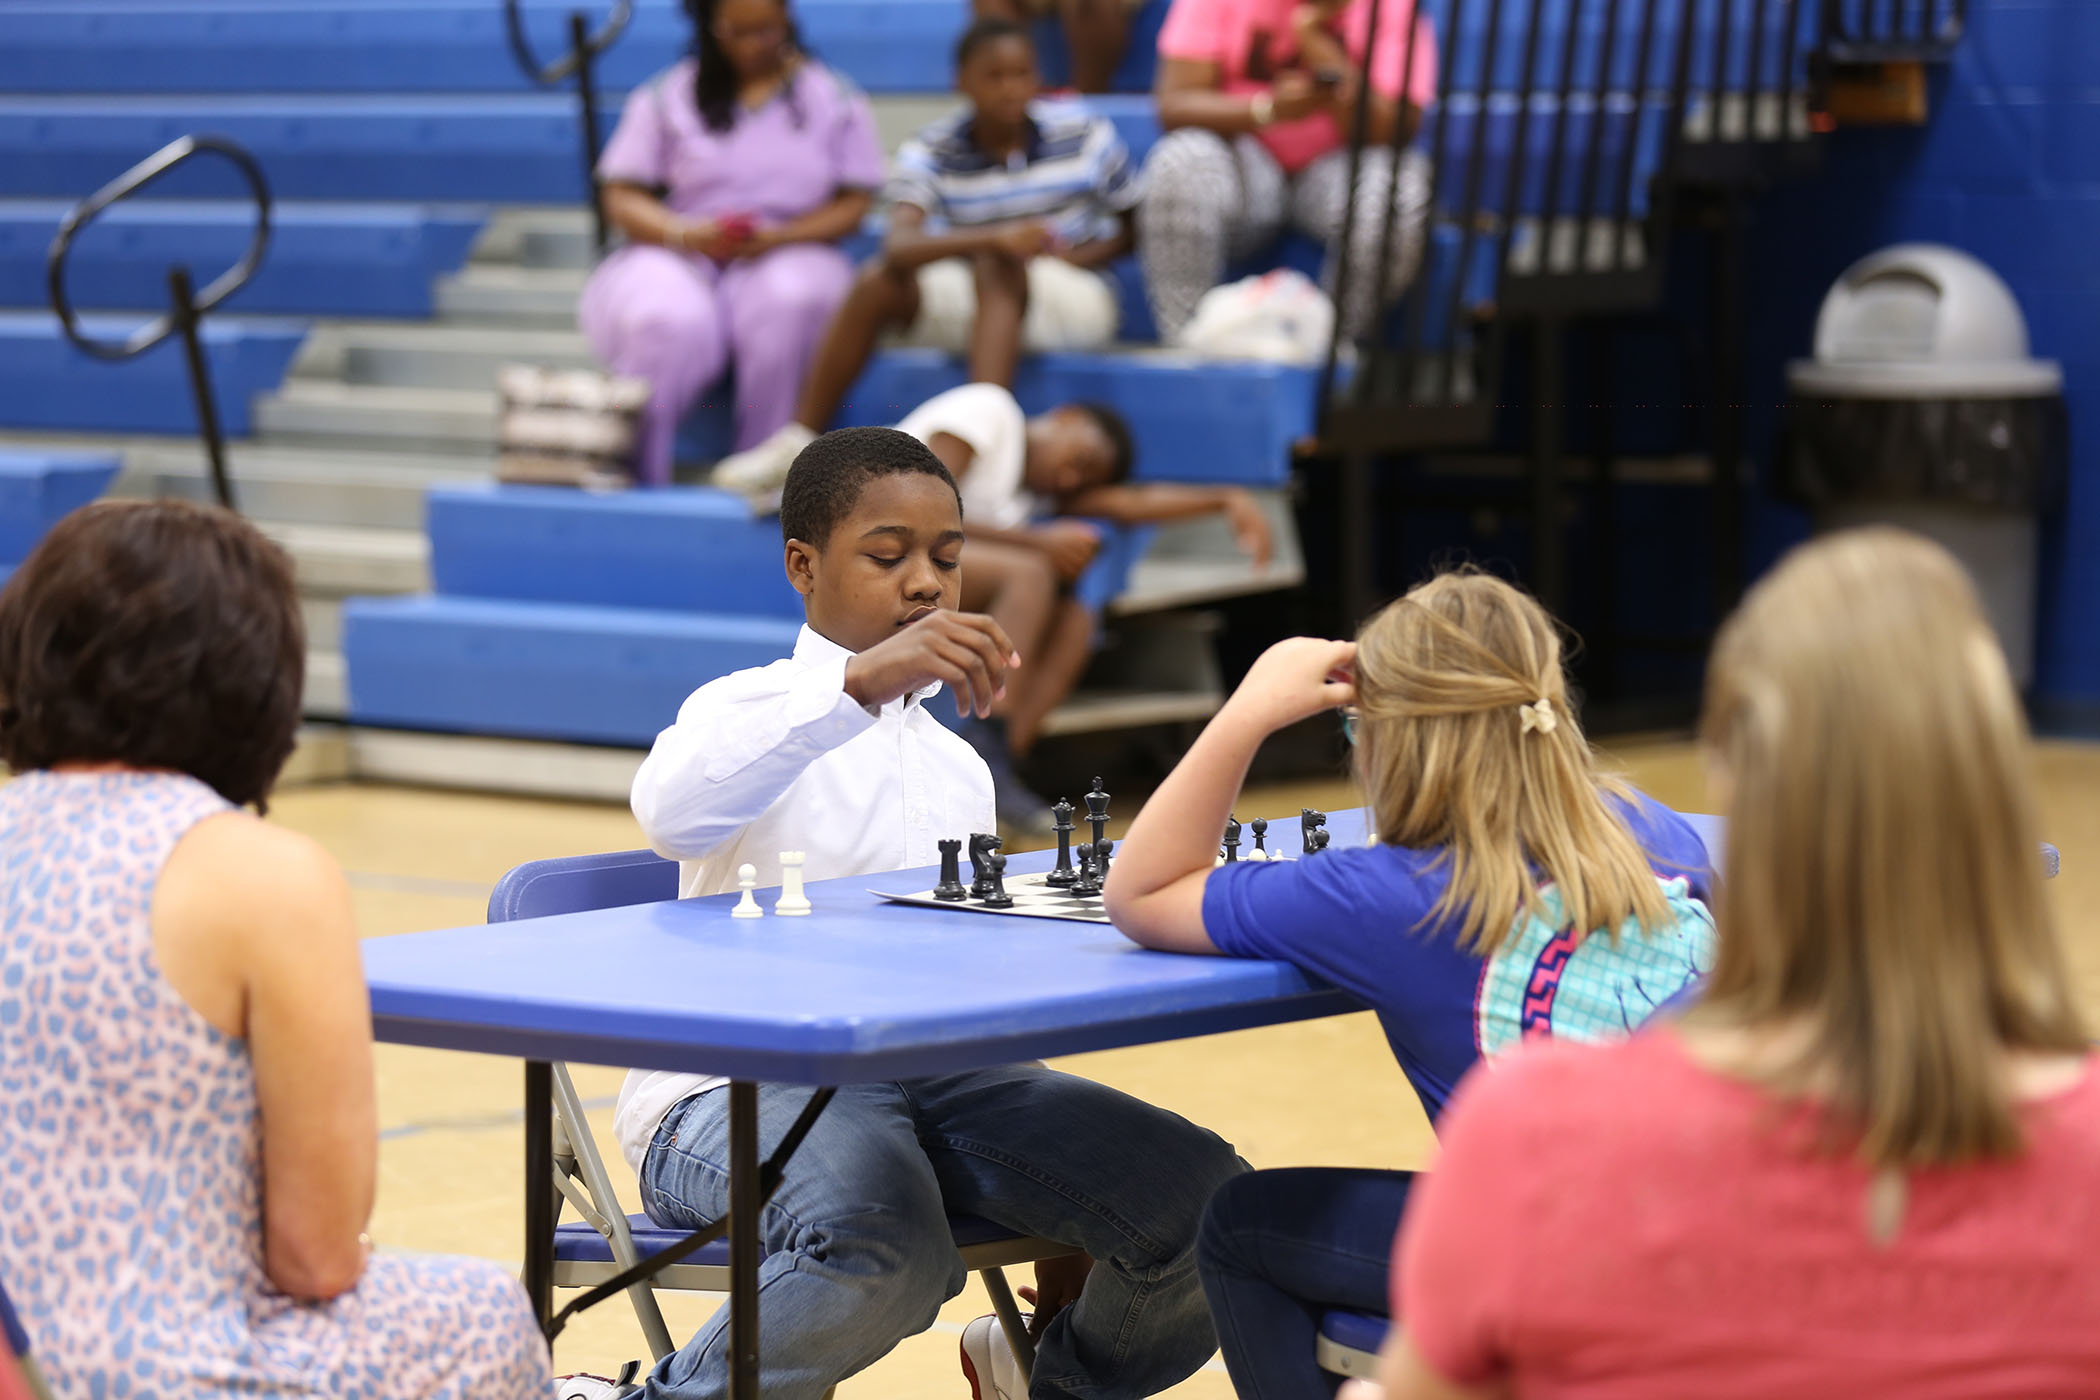 Chess players shake hands after a hard fought championship match.